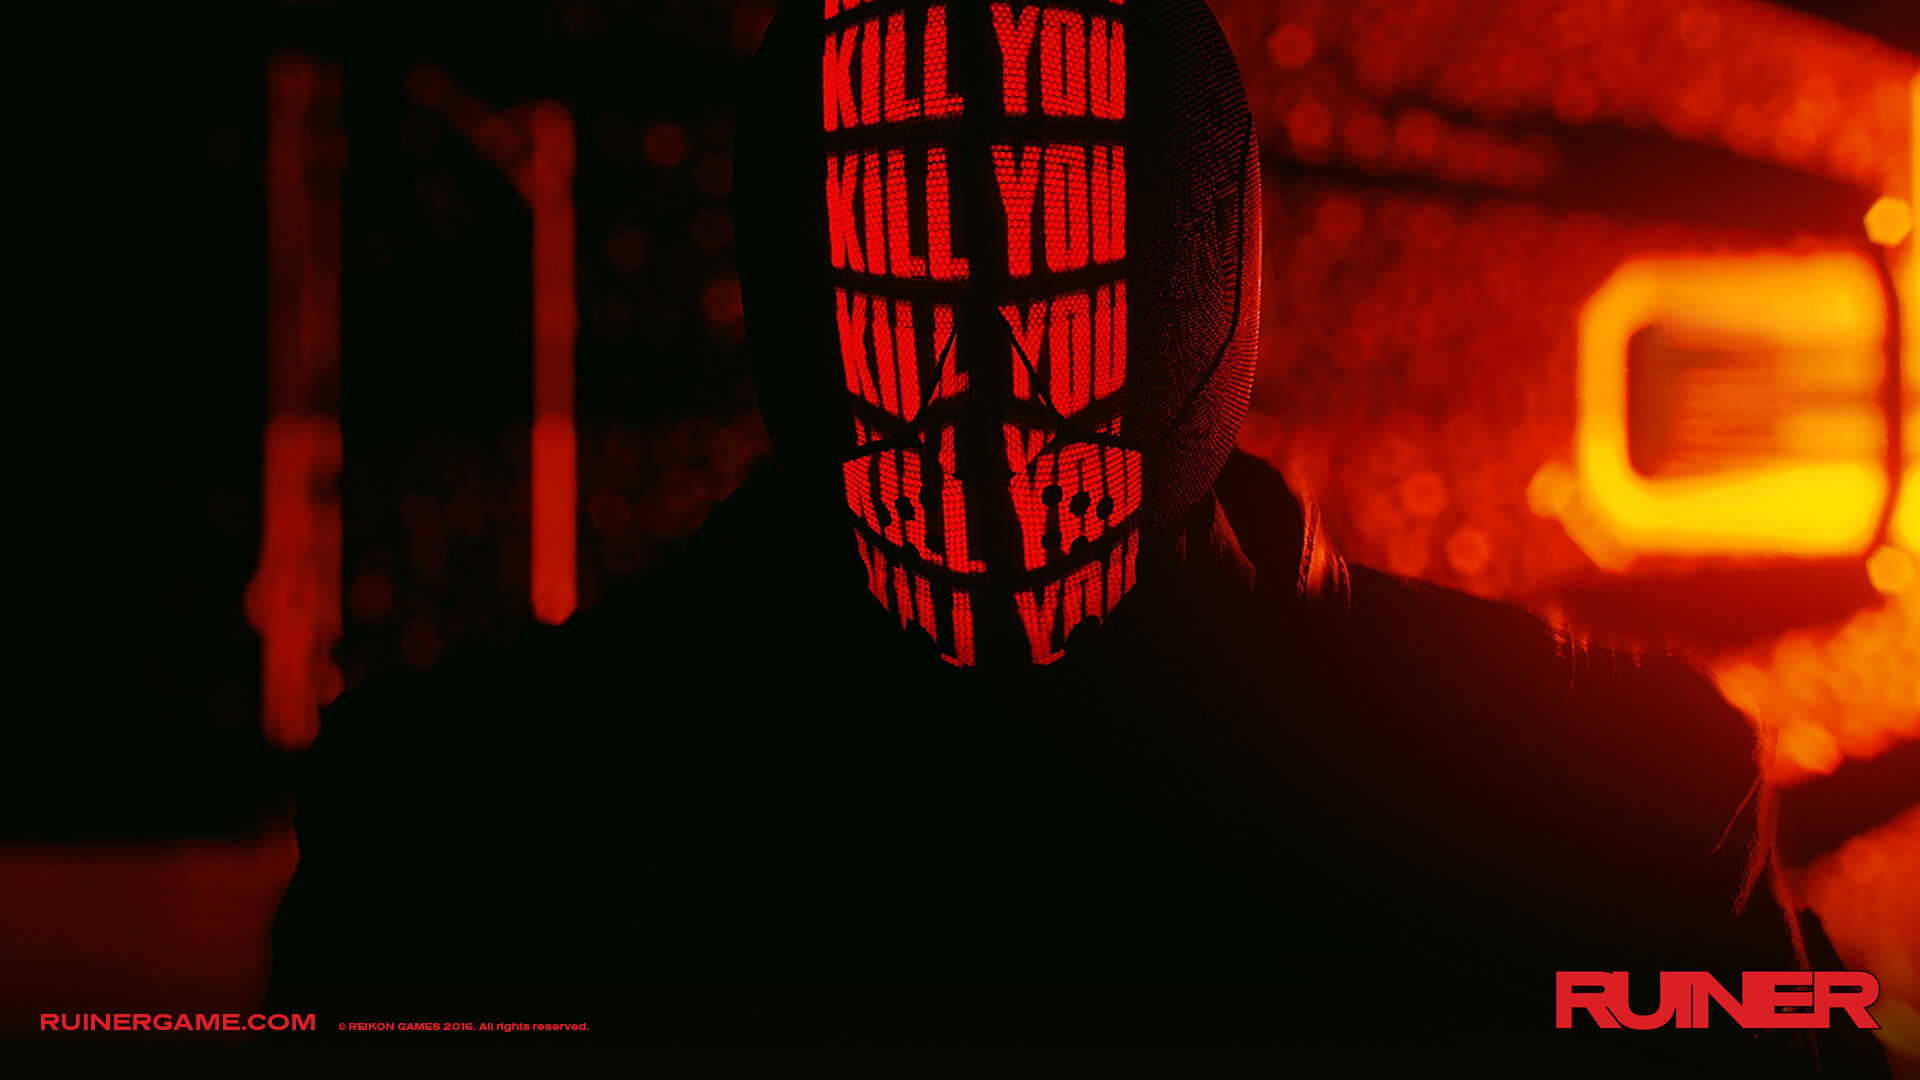 ruiner game devolver digital 1 - Brutal Cyberpunk Game Ruiner Launches on Consoles and PC